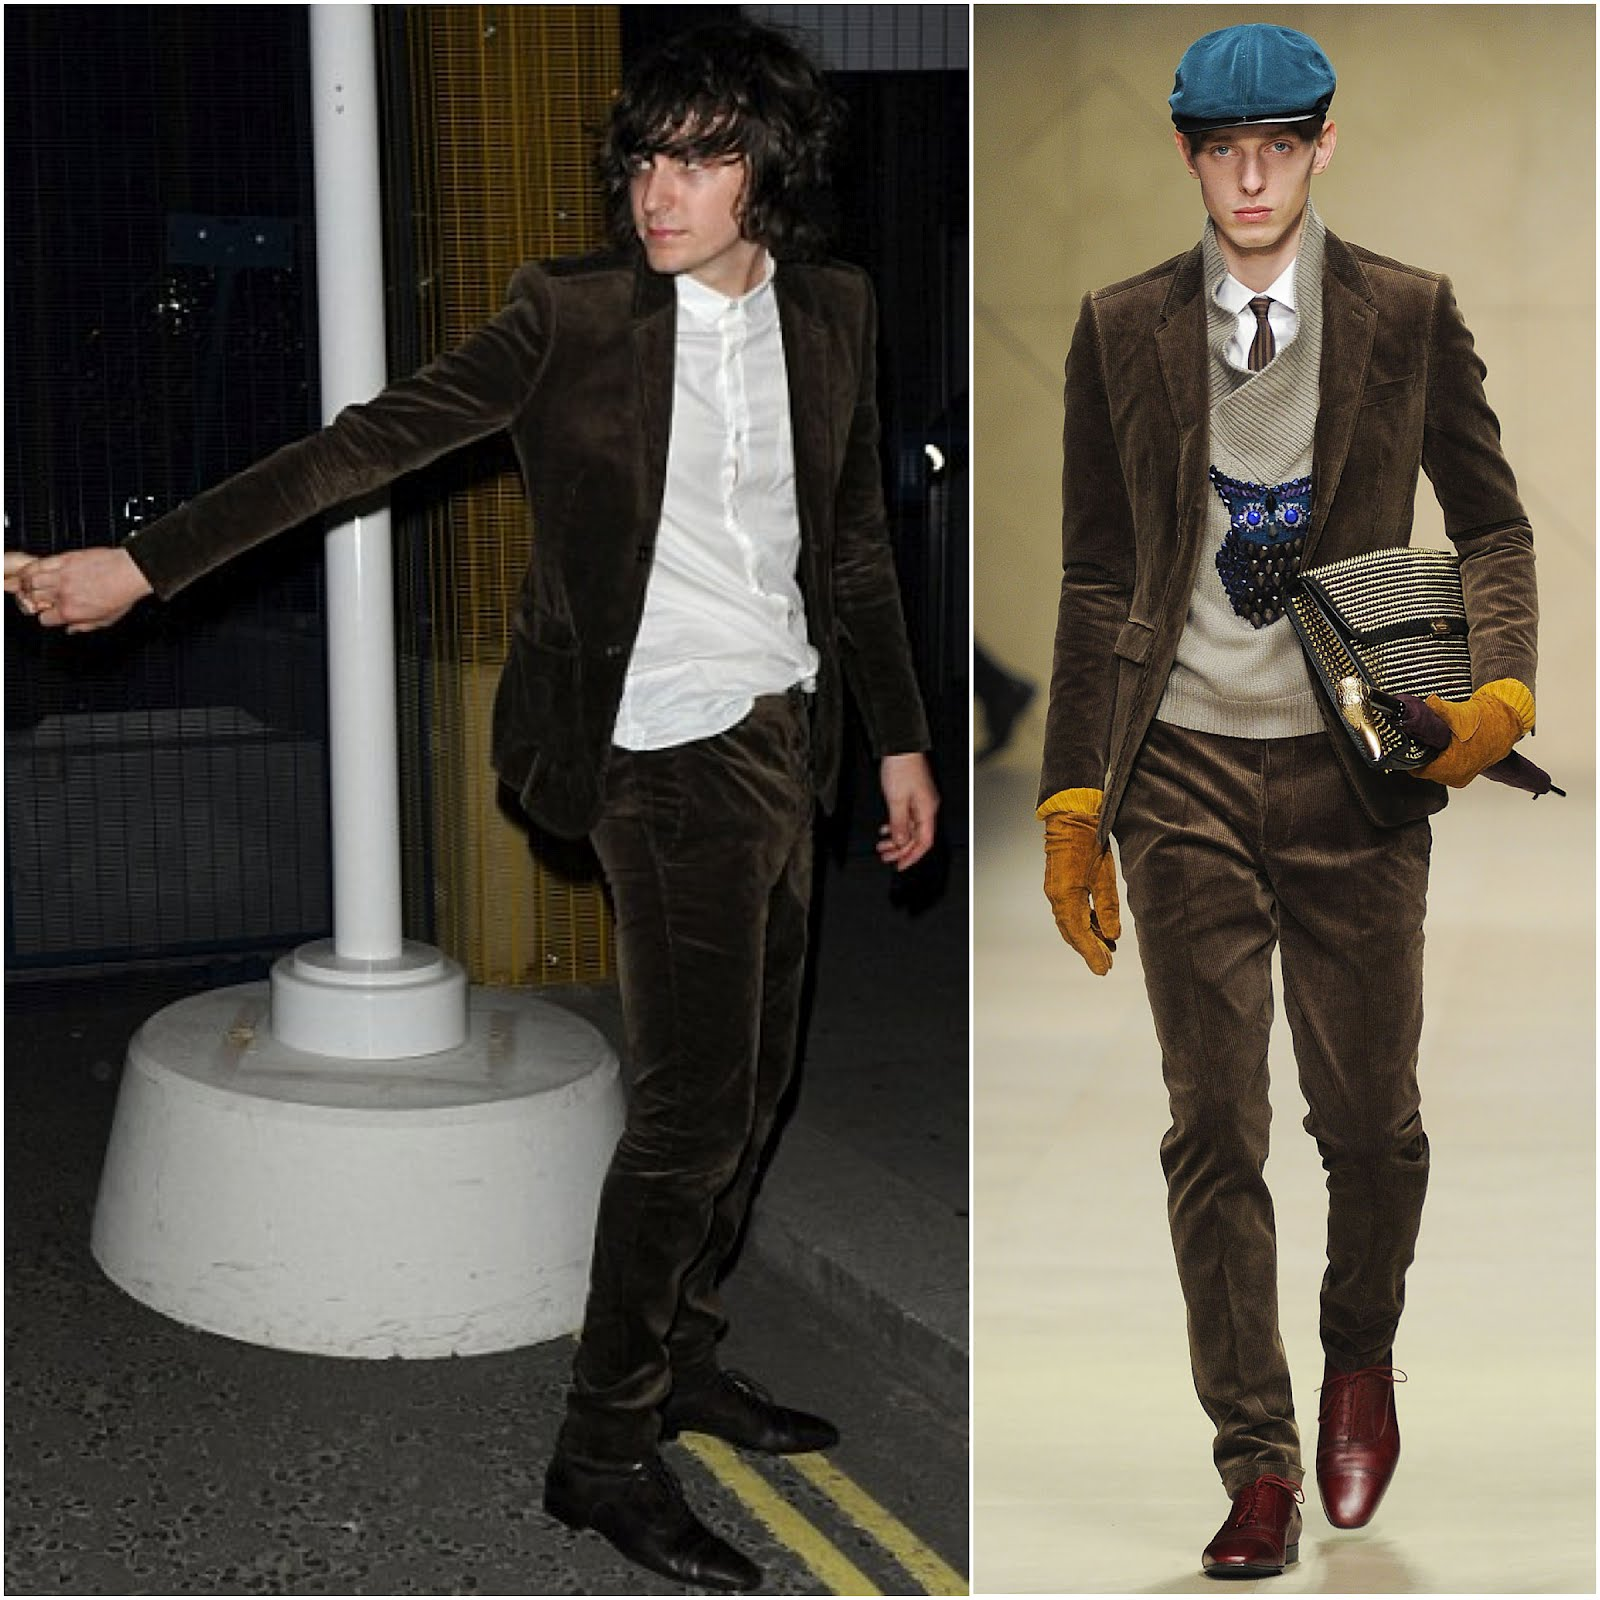 00O00 London Menswear Blog celebrity style George Craig in Burberry Prorsum Quilted corduroy jacket fall winter 2012 Diana Vickers 21st birthday party Whisky Mist